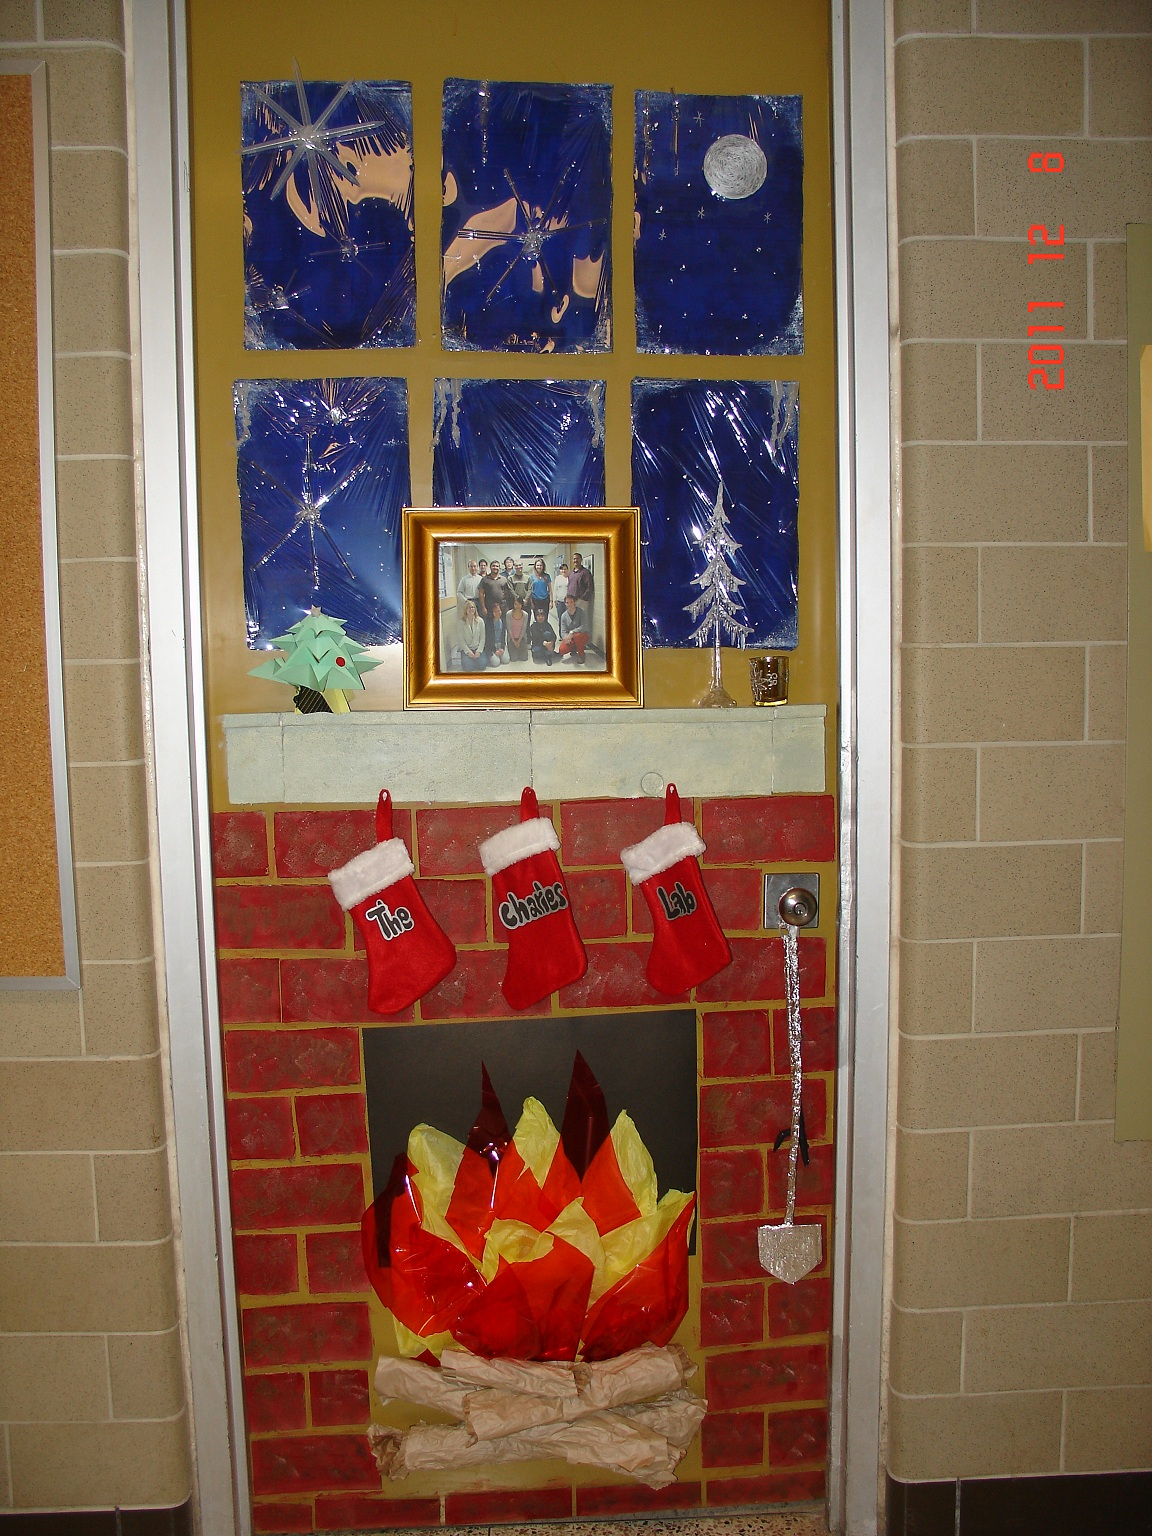 Christmas Door Decorating Contest Ideas For School : Uw biology graduate student association christmas door